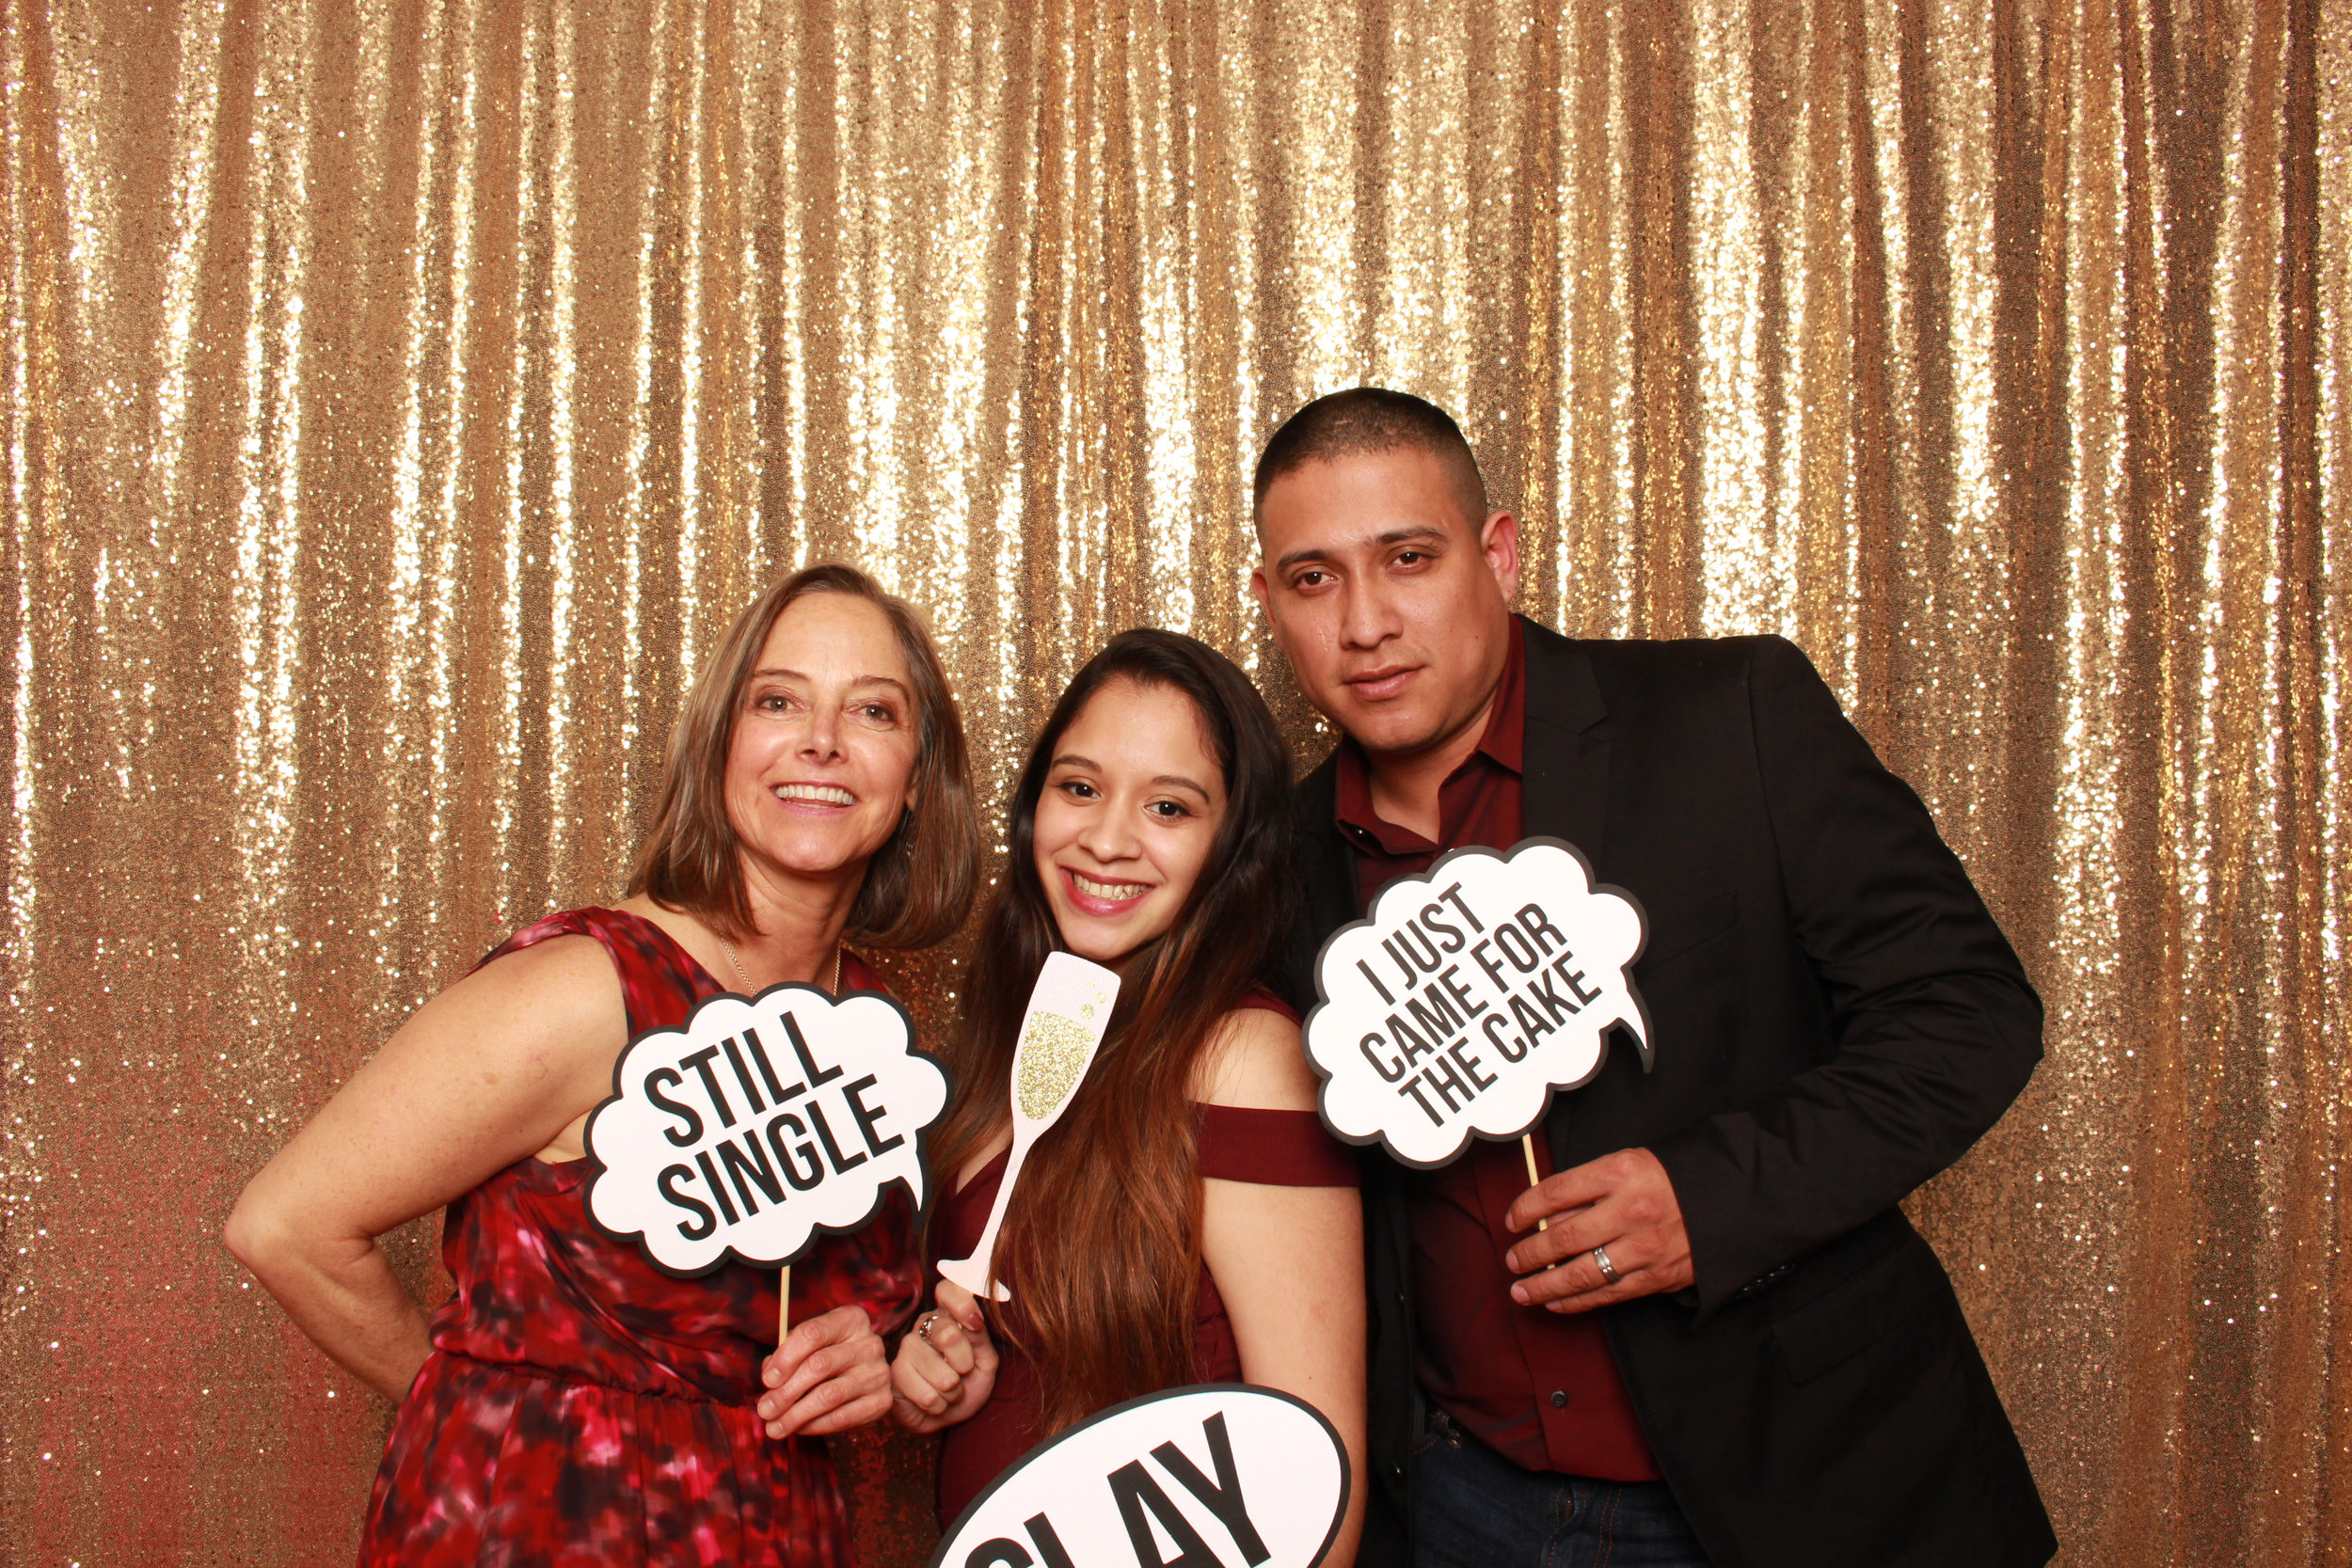 austin photo booth rental - Oh Happy Day Booth-37.jpg